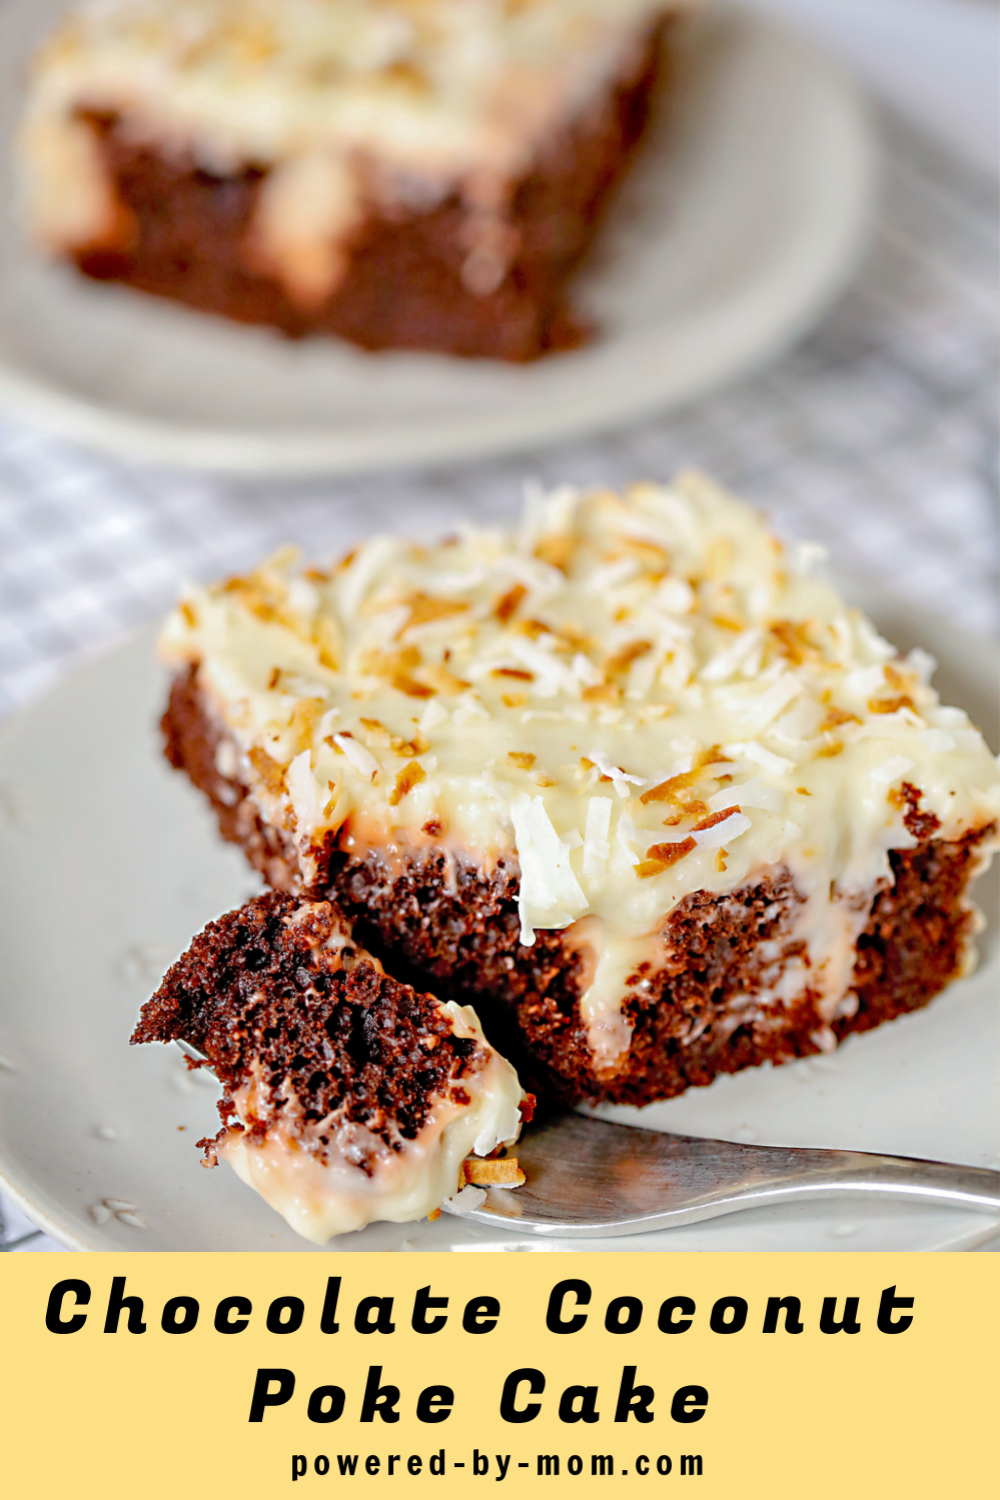 Chocolate Coconut Poke Cake with toasted coconut and homemade coconut pudding